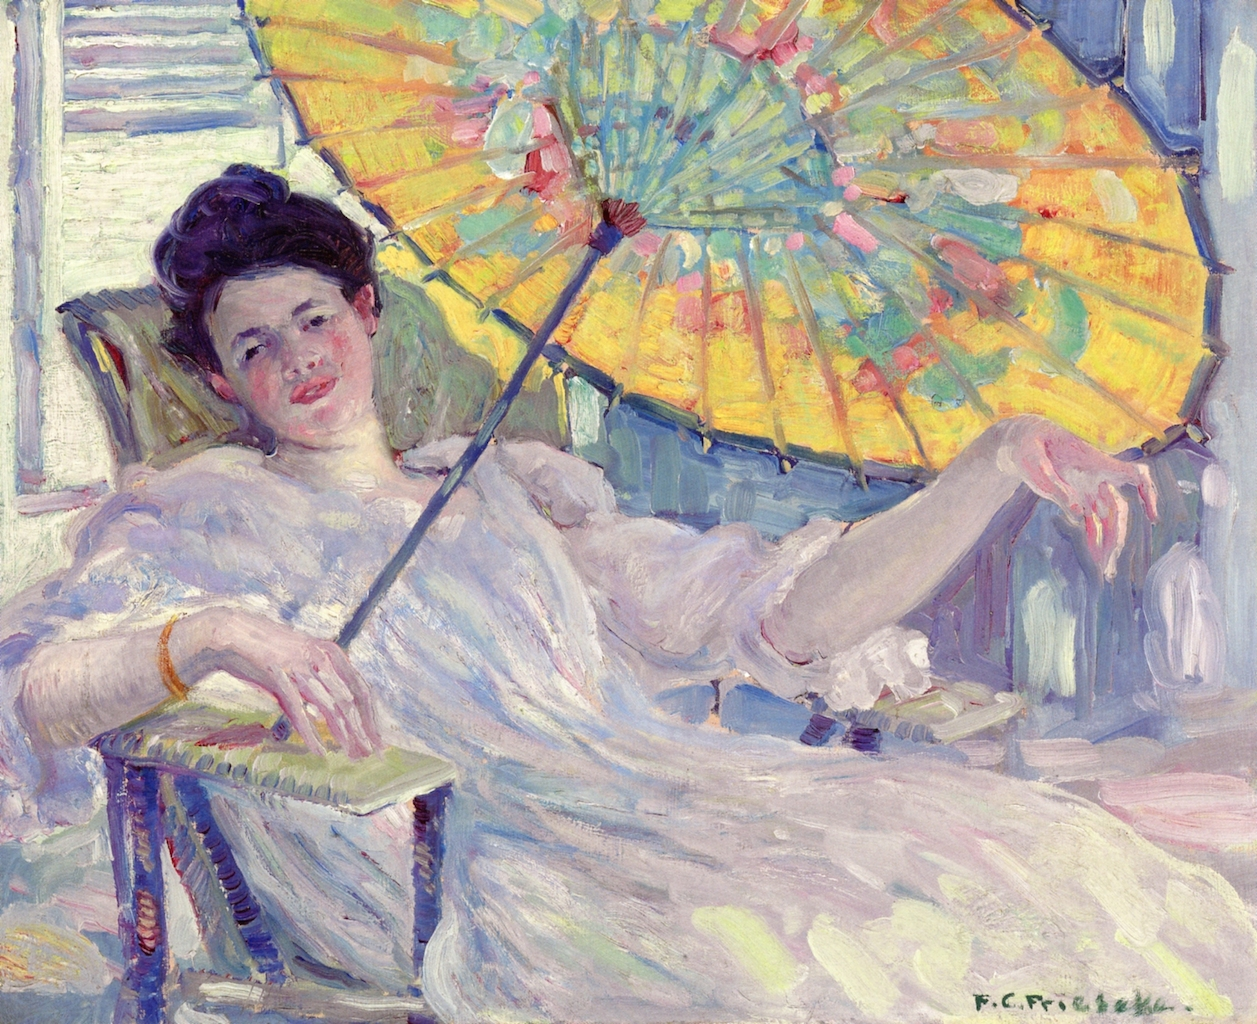 Woman with Parasol by Frederick Carl Frieseke, c. 1912